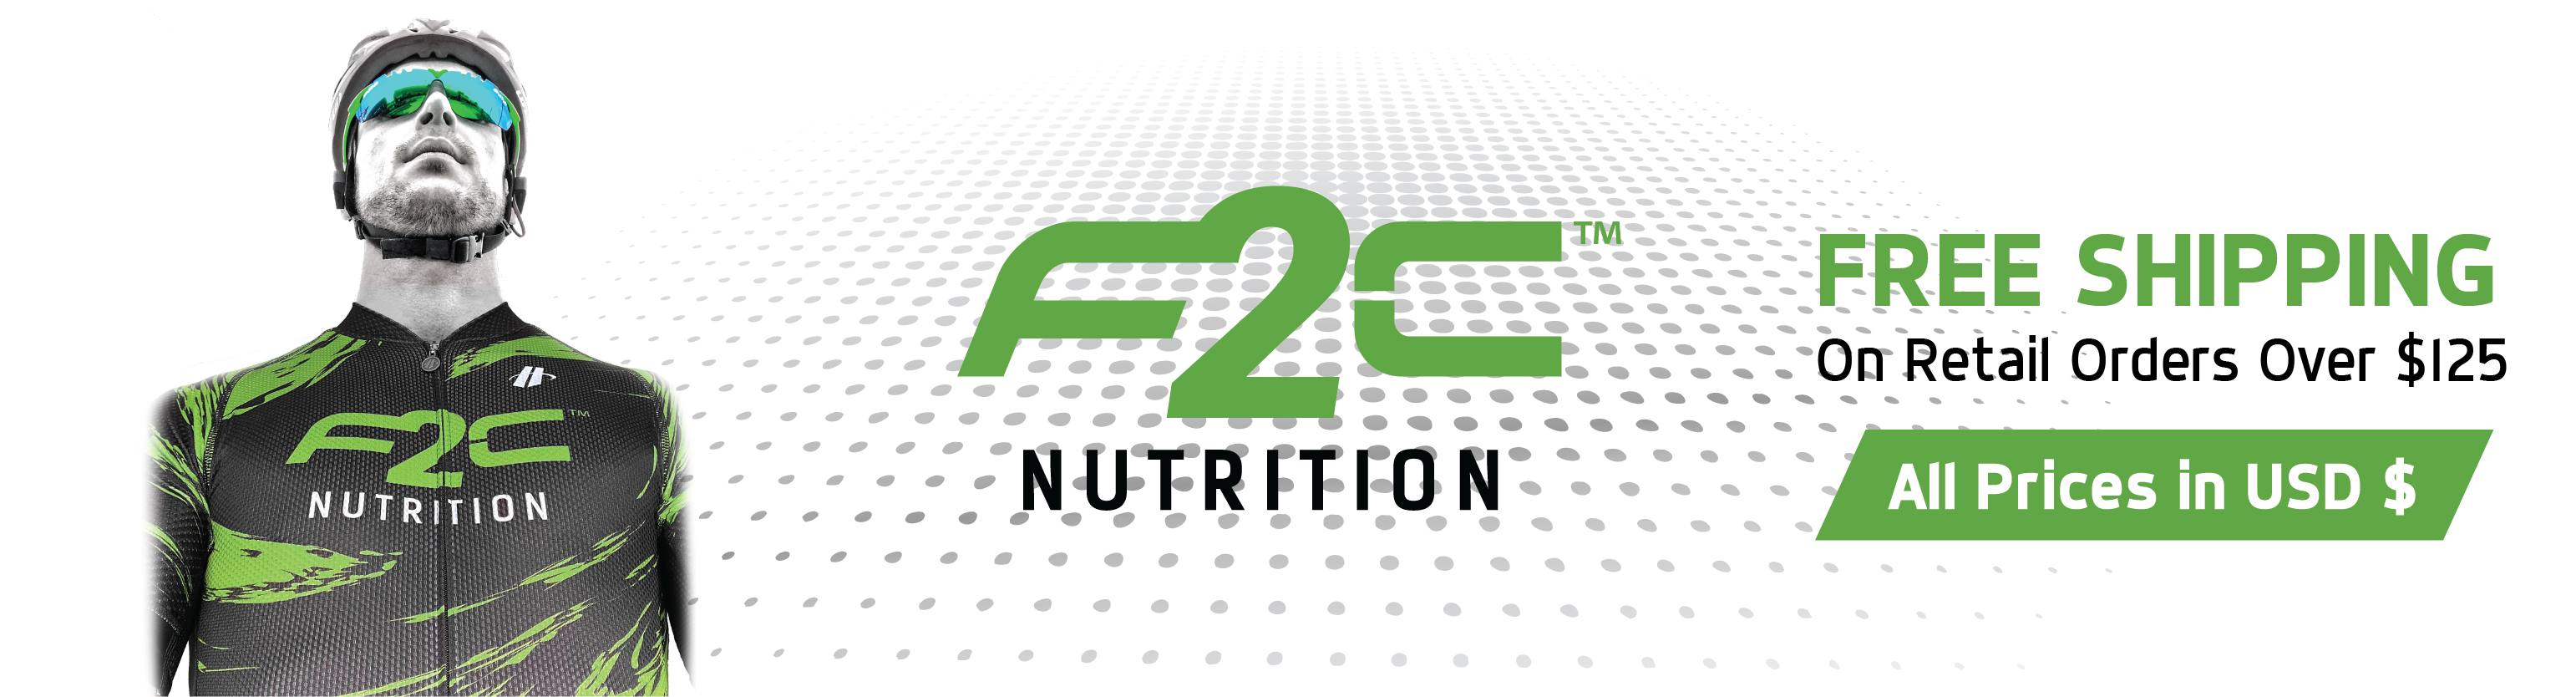 F2C NUTRITION - THE BEST NUTRITION ON EARTH